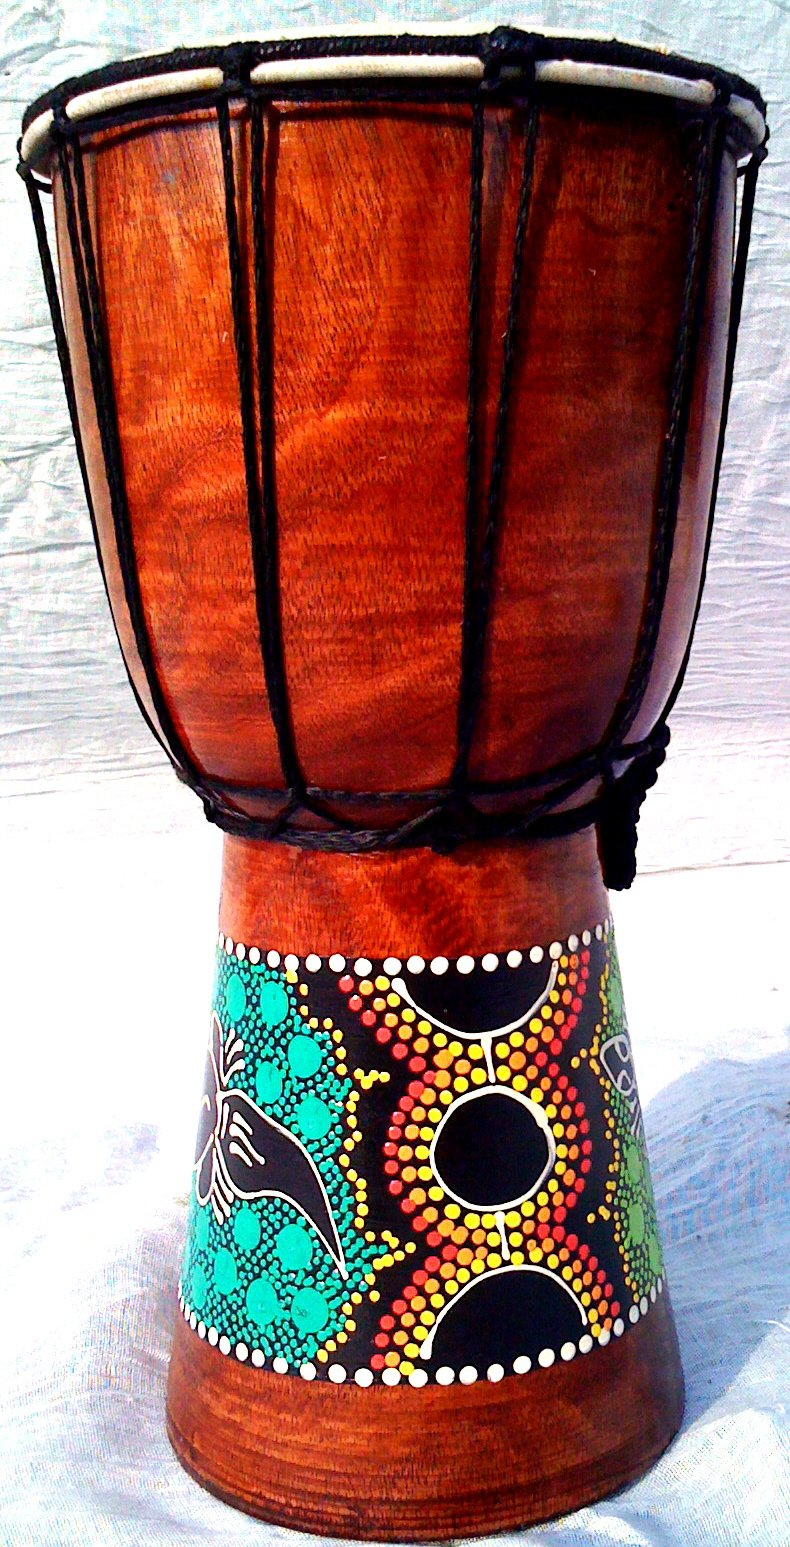 World Playground 30cm Djembe Drum with Hand Painted Design - West African Bongo Drum